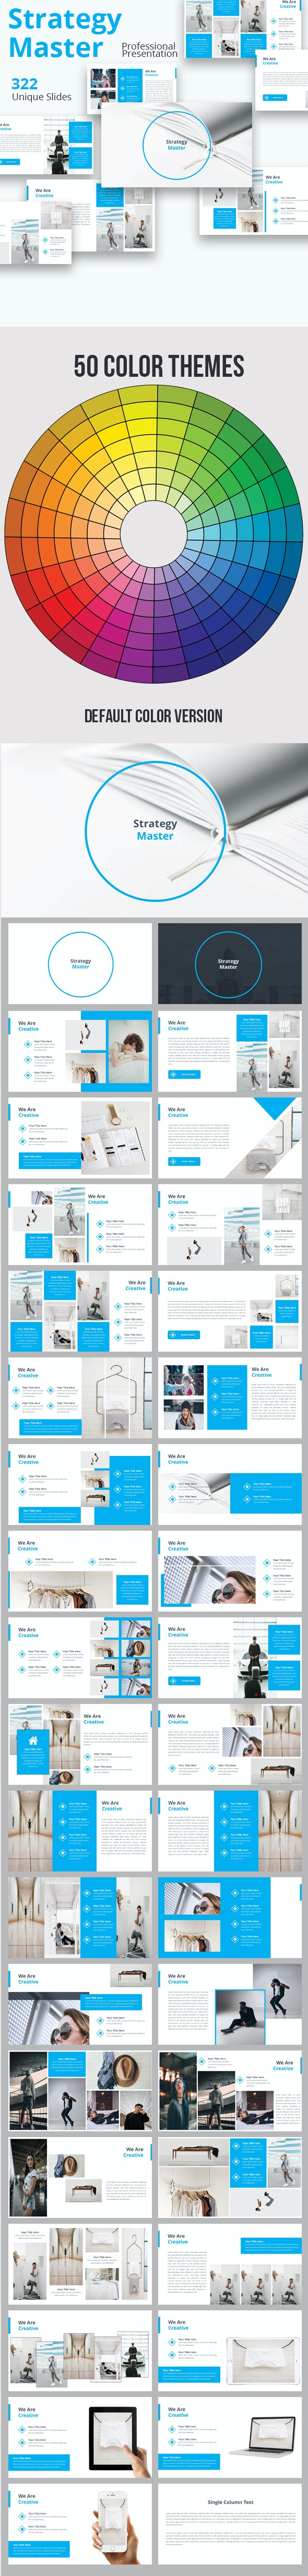 Strategy Master Premium Powerpoint Template By Loveishkalsi